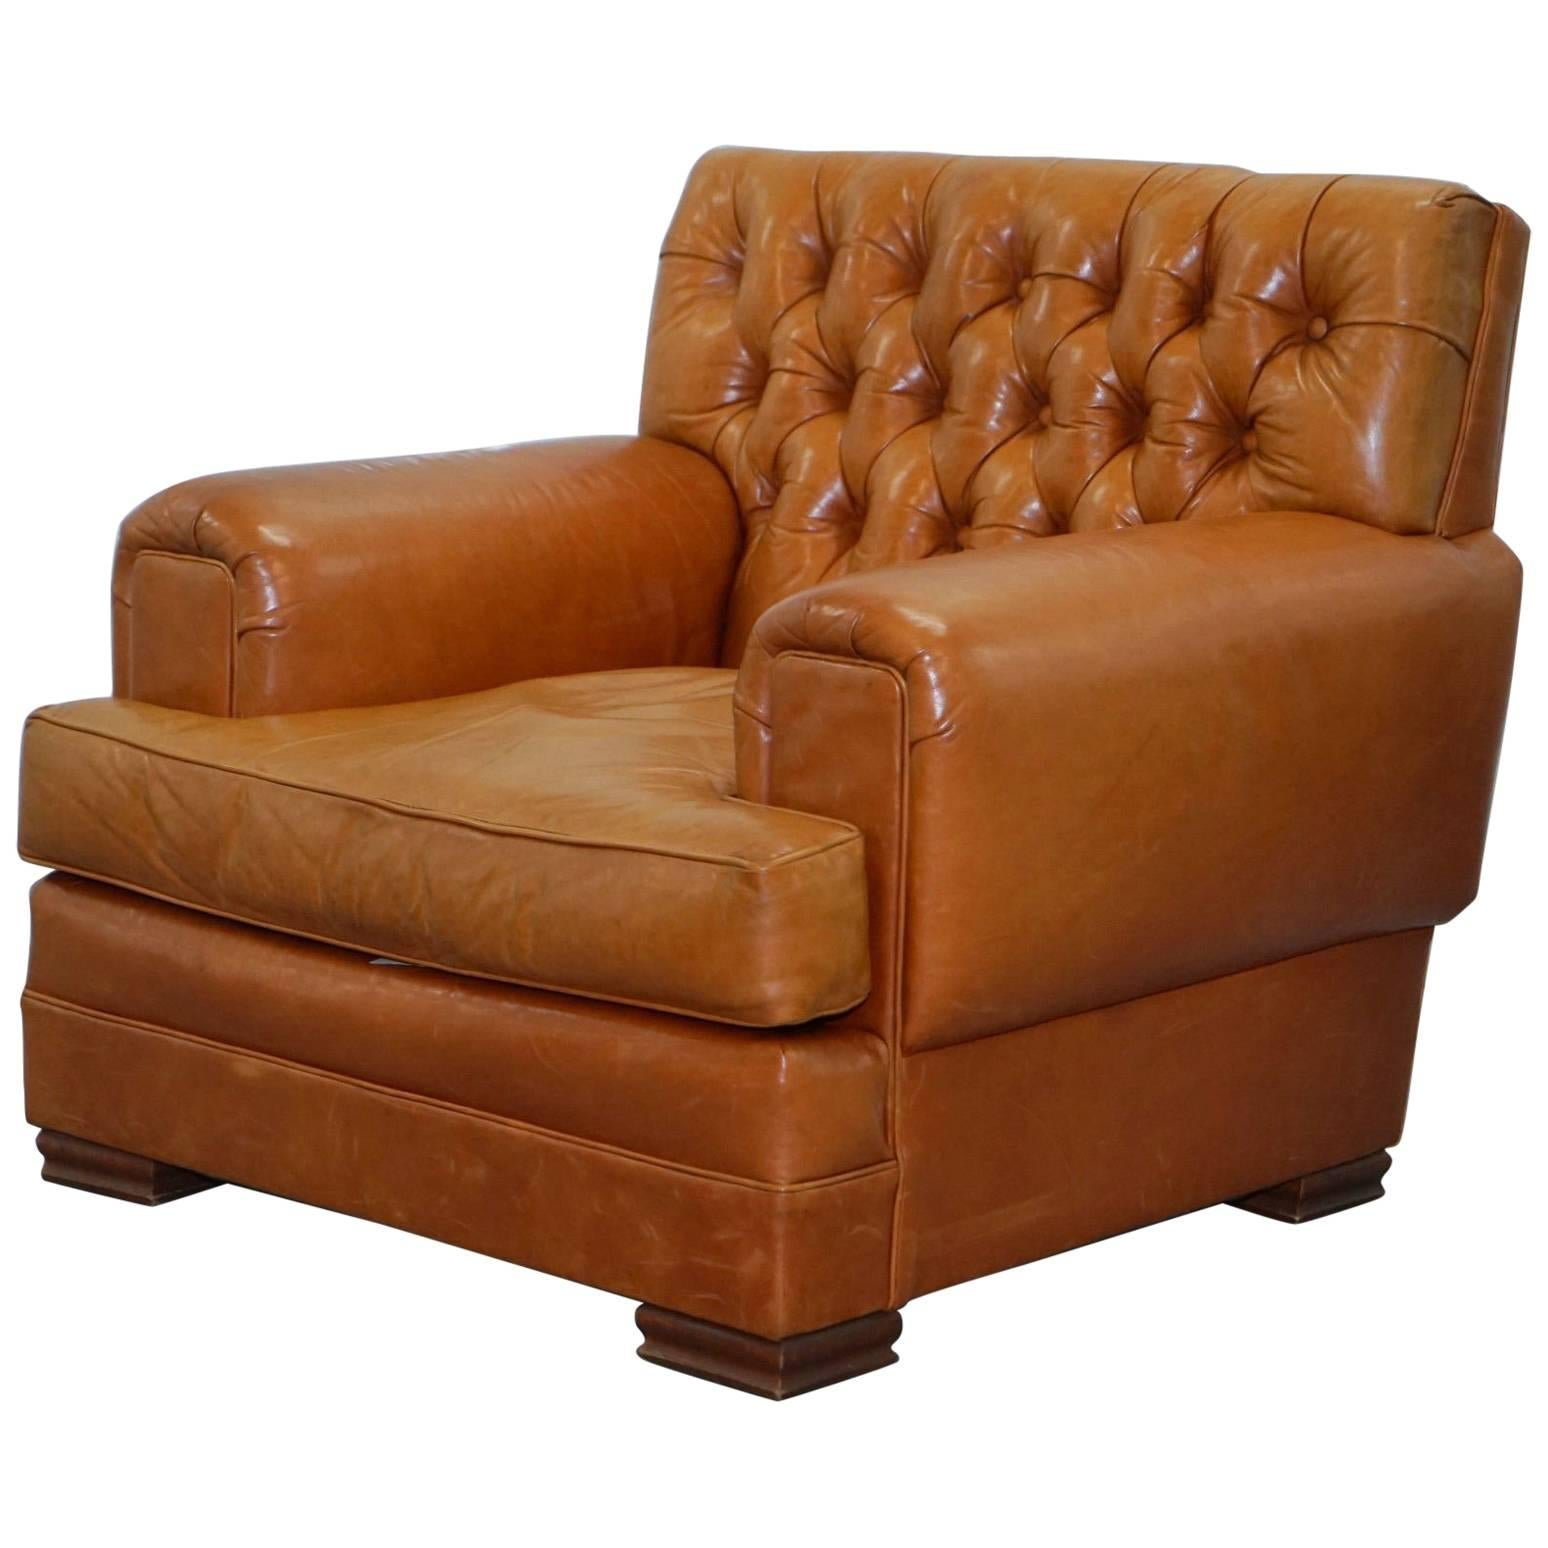 Ralph Lauren Armchair Aged Tan Brown Vintage Distressed Leather Very Rare  Find